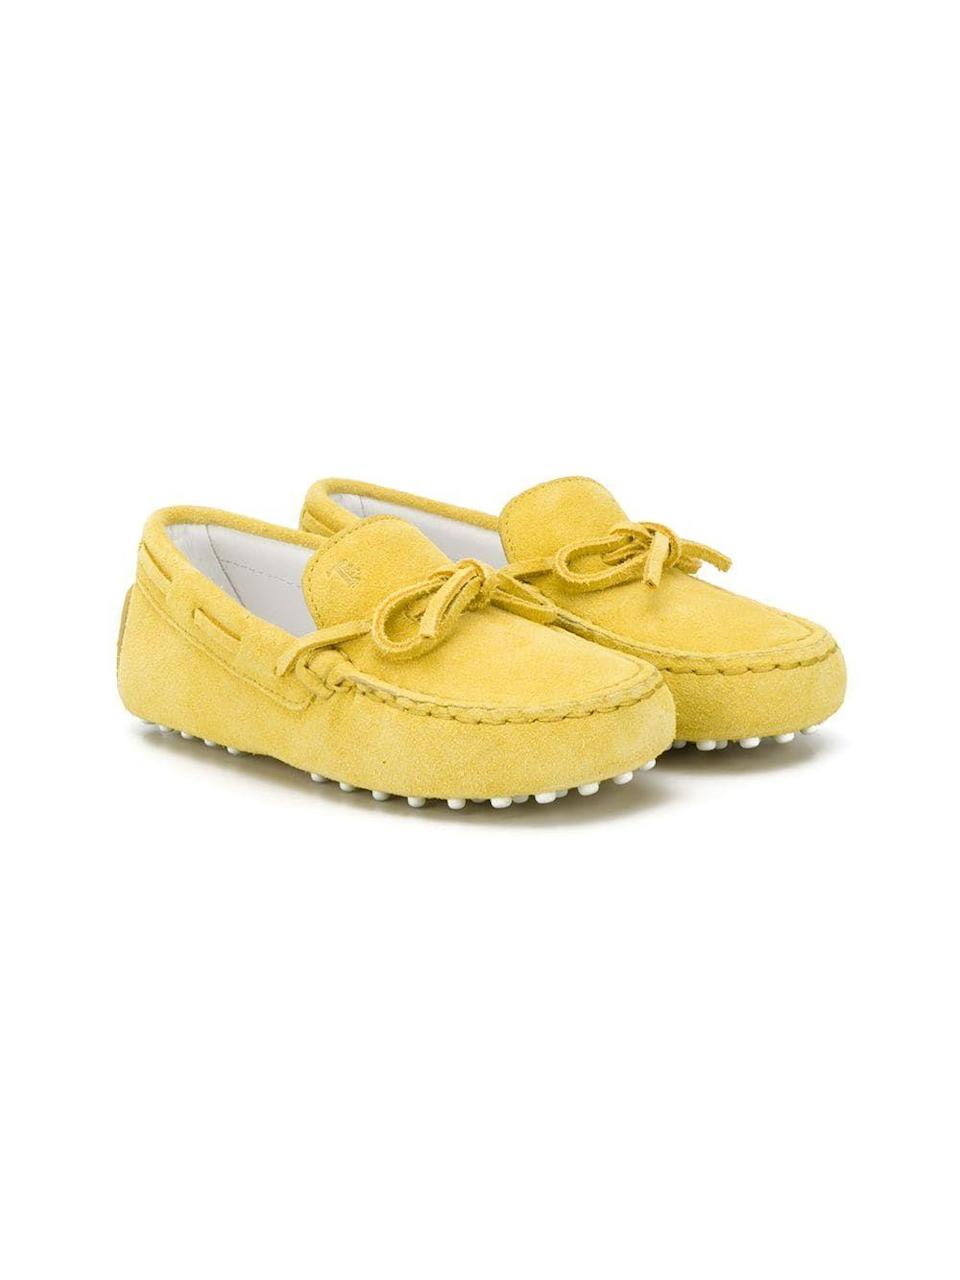 """<p><strong>Tod's Kids</strong></p><p>farfetch.com</p><p><strong>$236.00</strong></p><p><a href=""""https://go.redirectingat.com?id=74968X1596630&url=https%3A%2F%2Fwww.farfetch.com%2Fshopping%2Fkids%2Ftods-kids-bow-detail-loafers-item-15445368.aspx&sref=https%3A%2F%2Fwww.redbookmag.com%2Flife%2Fg34824699%2Fkids-gift-guide%2F"""" rel=""""nofollow noopener"""" target=""""_blank"""" data-ylk=""""slk:Shop Now"""" class=""""link rapid-noclick-resp"""">Shop Now</a></p><p>Driving loafers don't require a license. </p>"""